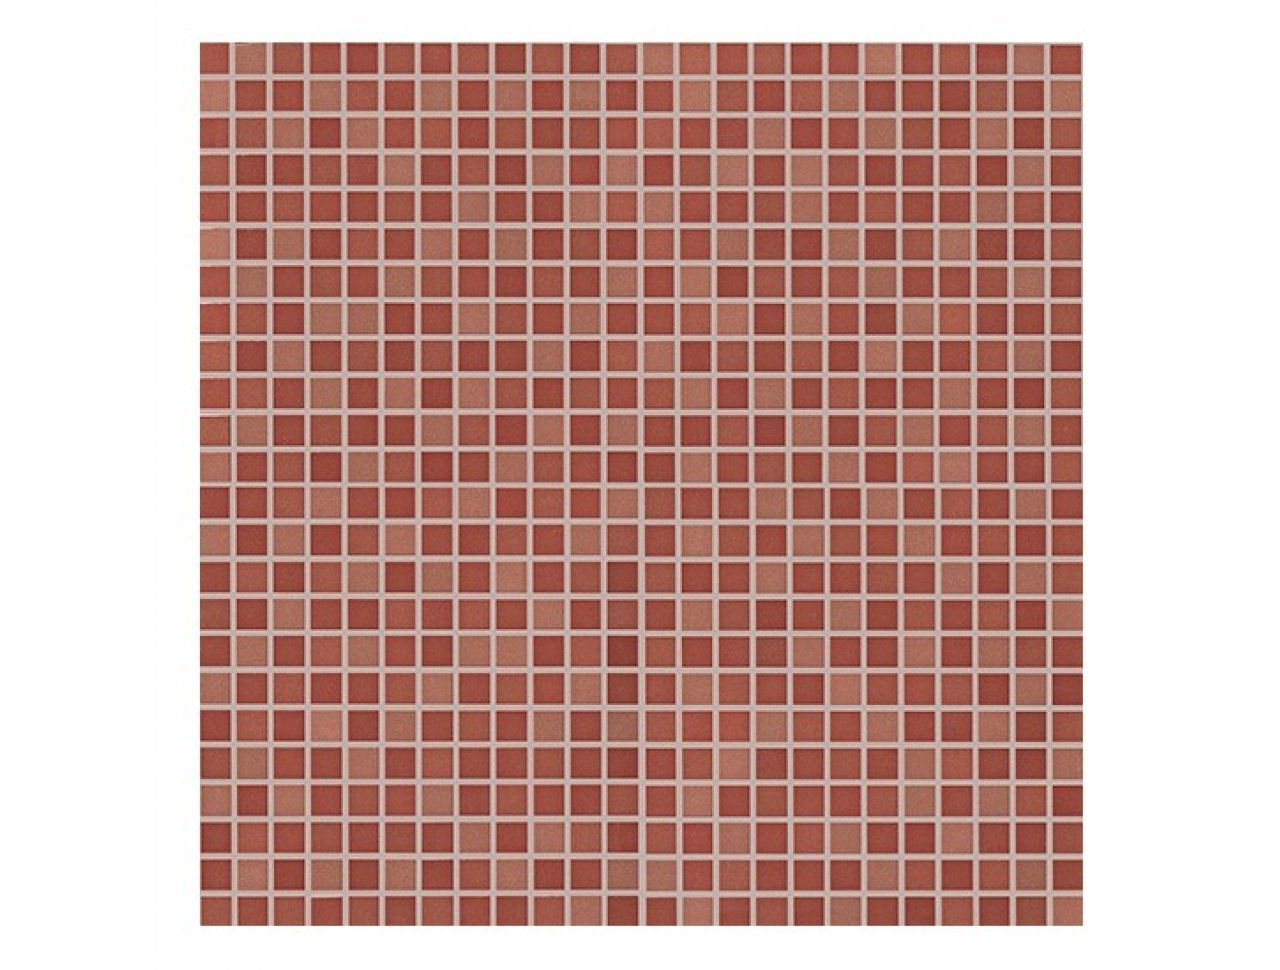 Мозаика FAP Color Now Marsala Micromosaico 30.5 x 30.5 см, Арт. fMTO